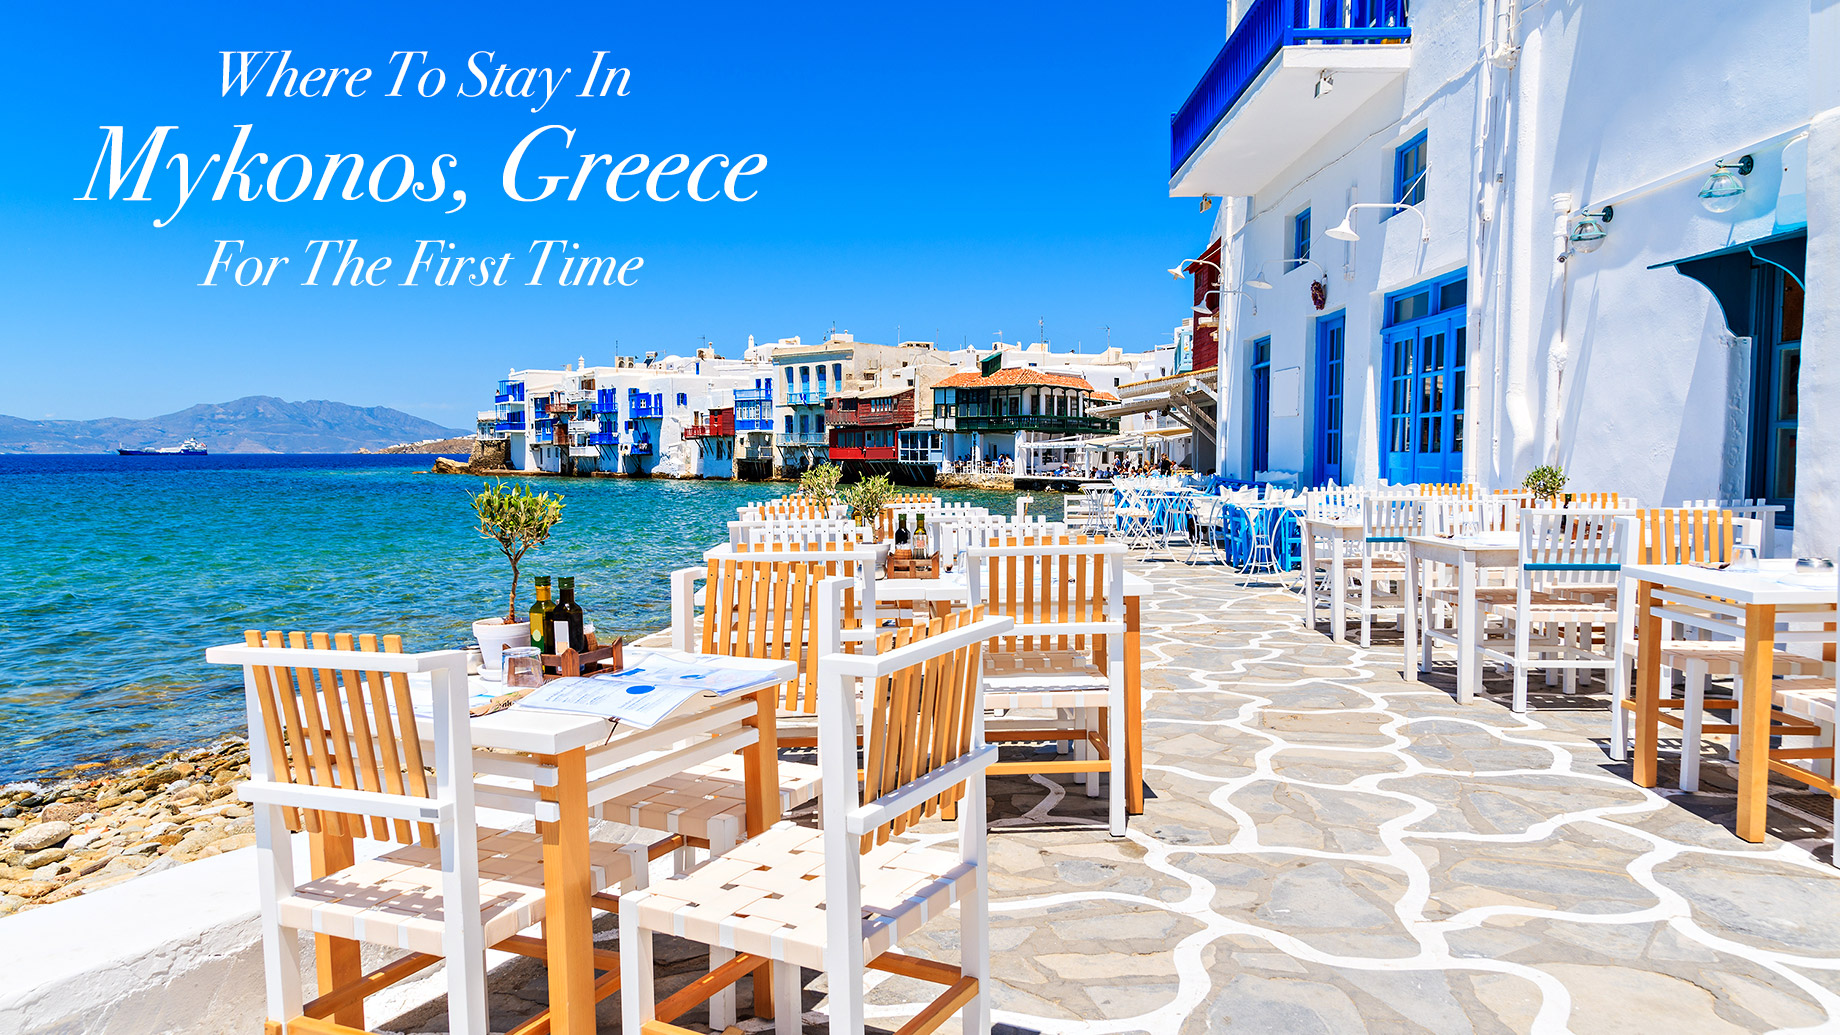 Where To Stay In Mykonos, Greece For The First Time